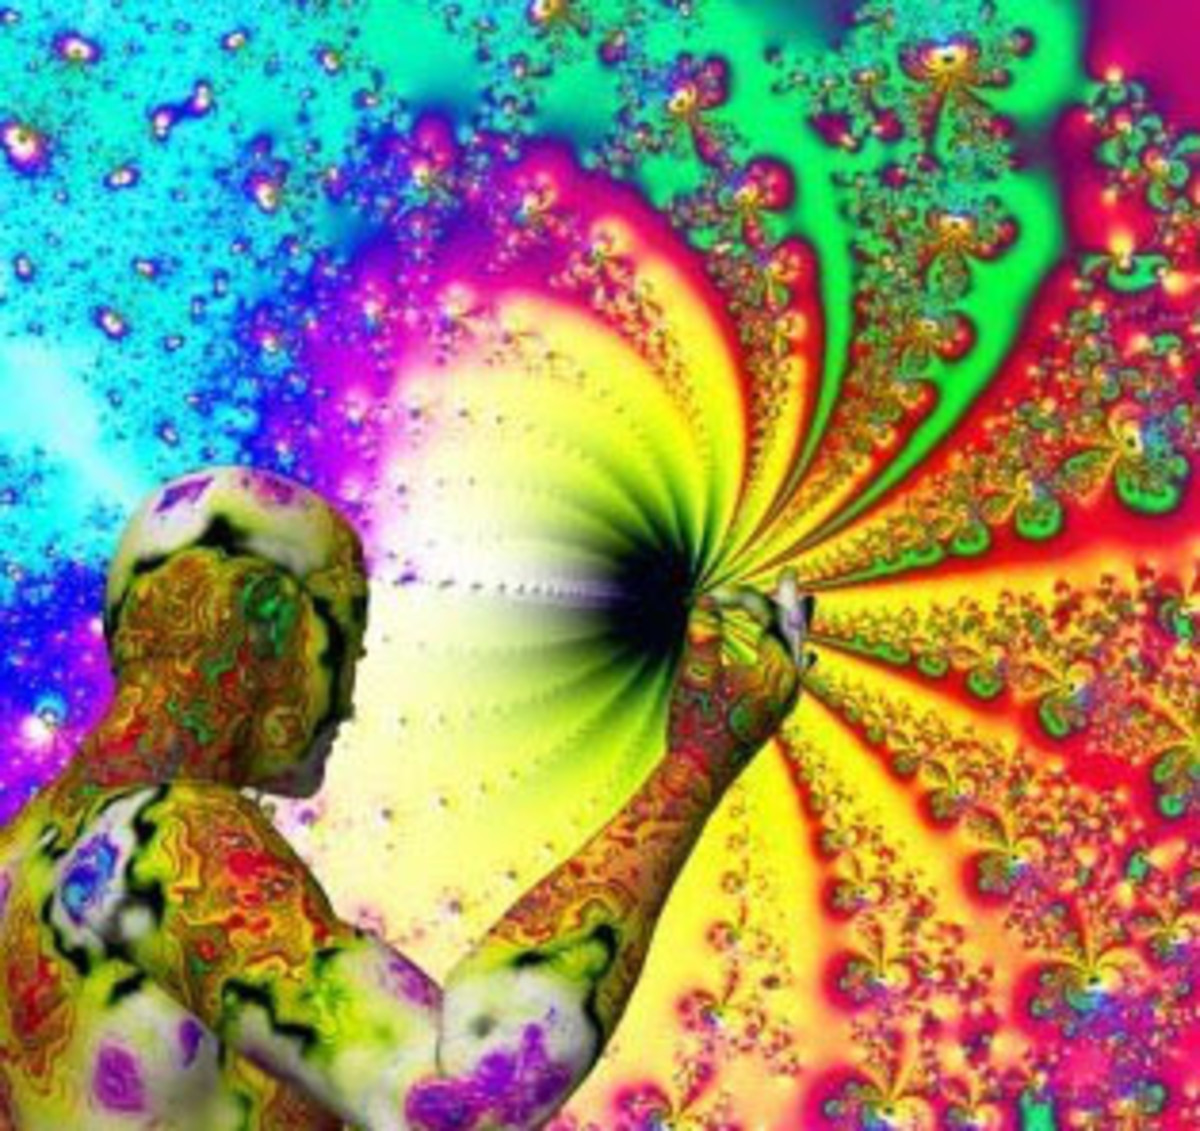 Why i love to listen Psytrance music | Goa mind storming